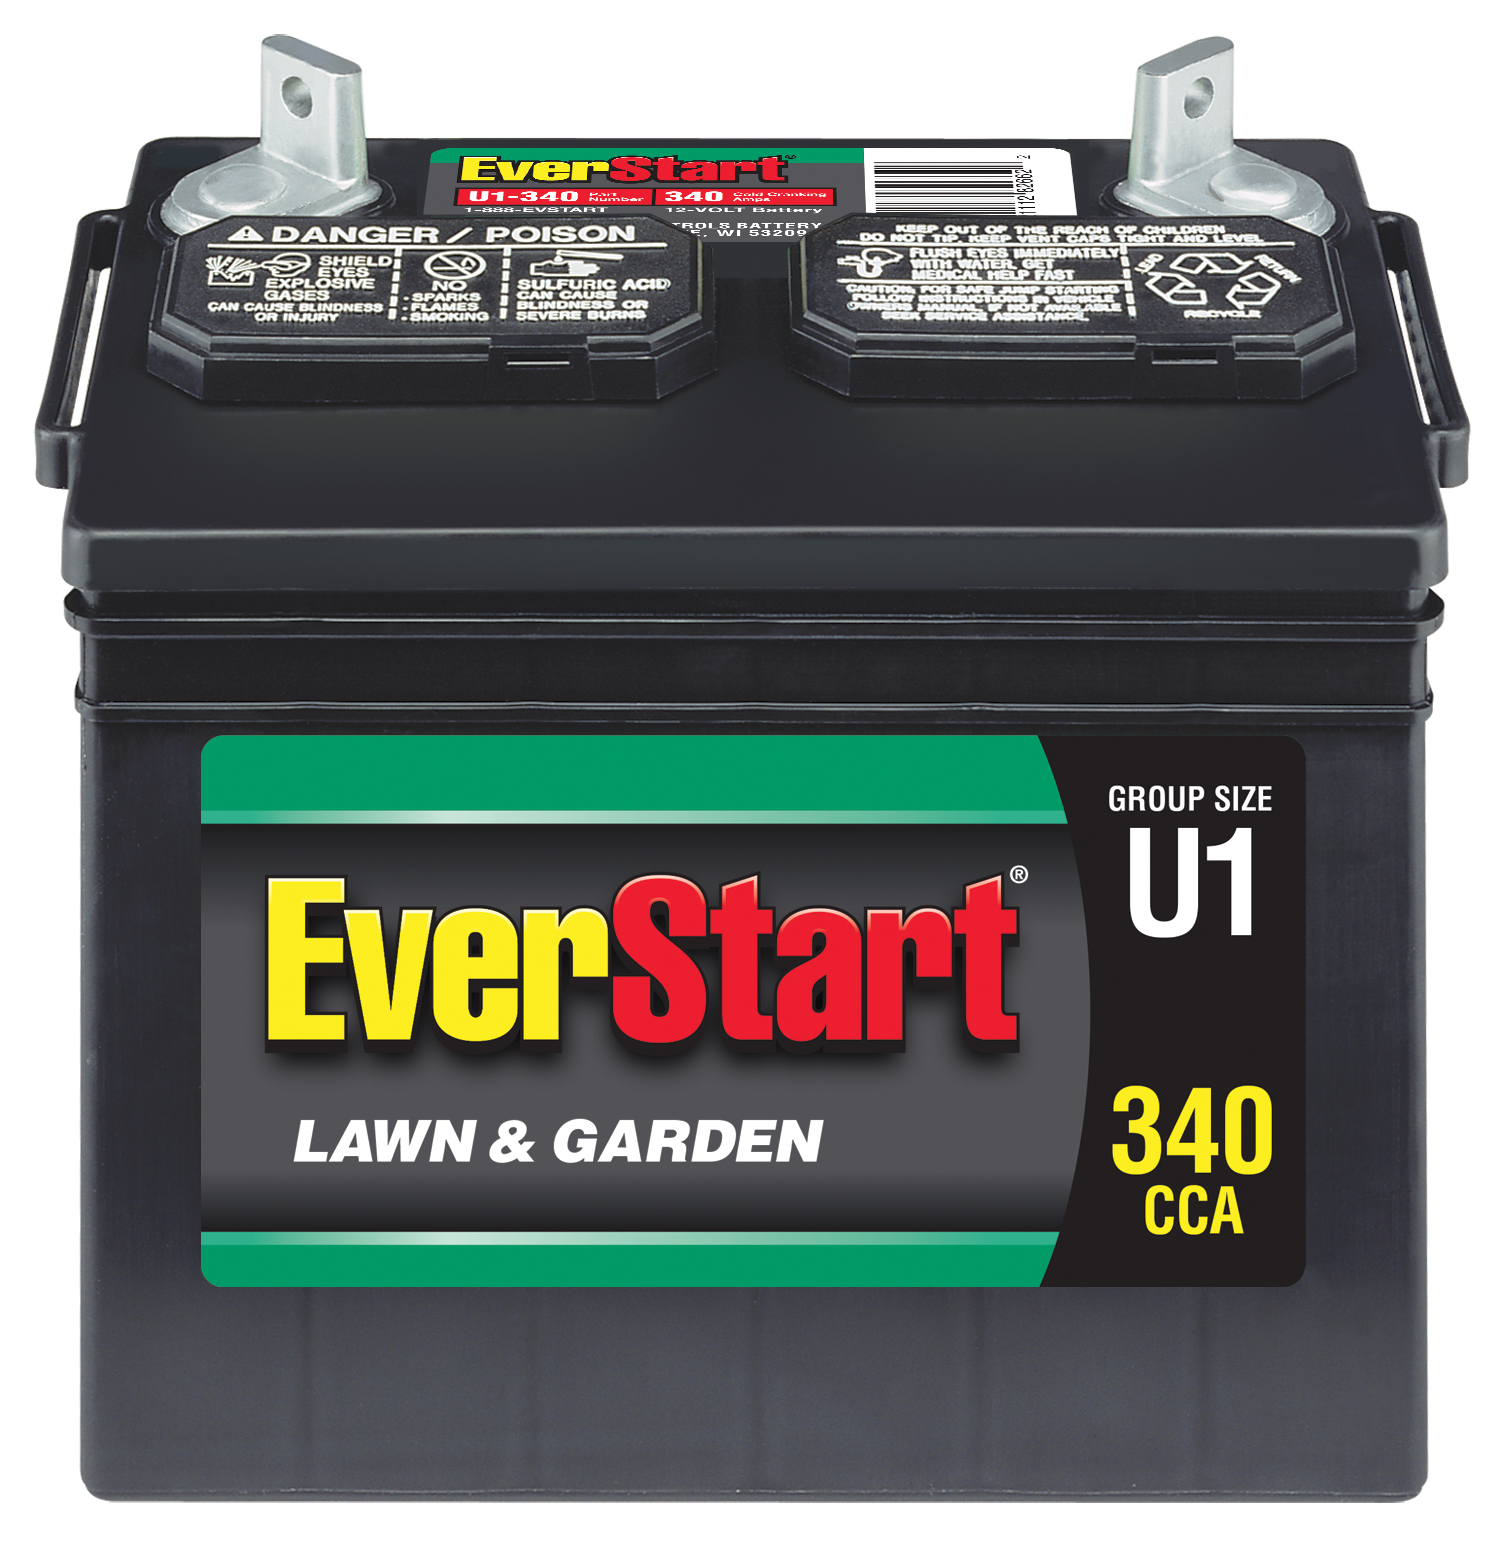 Lawn & Garden Batteries; Marine Batteries; Motorcycle Batteries; Other Batteries; Power Sports Batteries; Shop by Online Savings, Price and more. Online Savings and Walmart offers. You can unsubscribe at anytime. Subscribe 0 Thank you! You are now subscribed to the Walmart newsletter. Personal information provided may be collected, used.